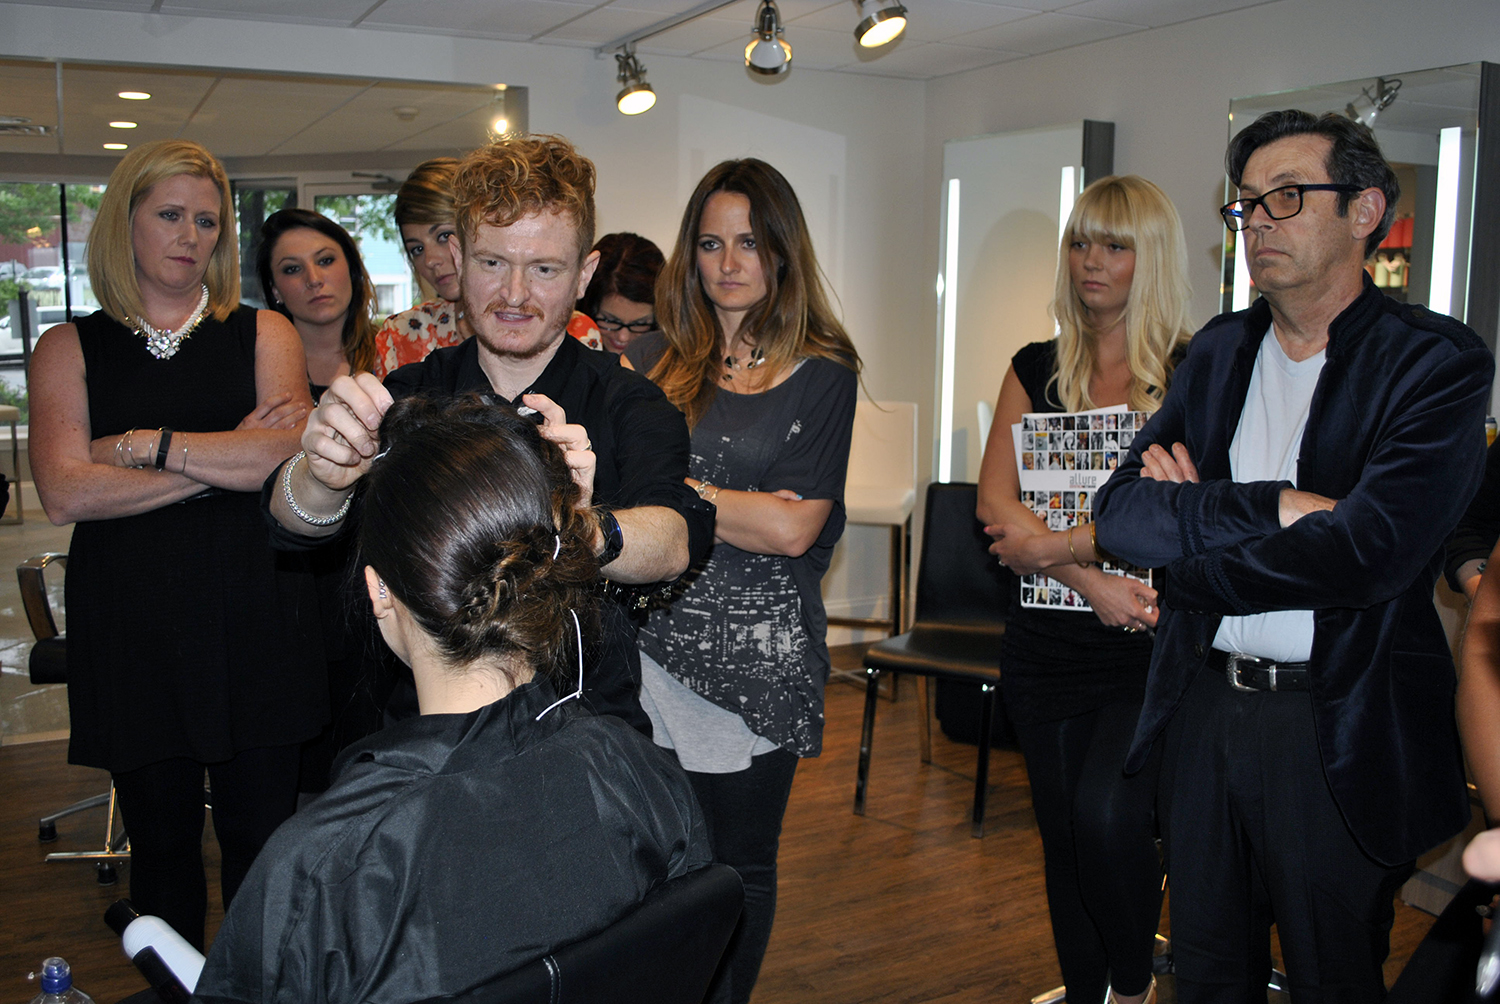 stylists gather around Travis to learn red carpet styling techniques at Shu Uemura education event